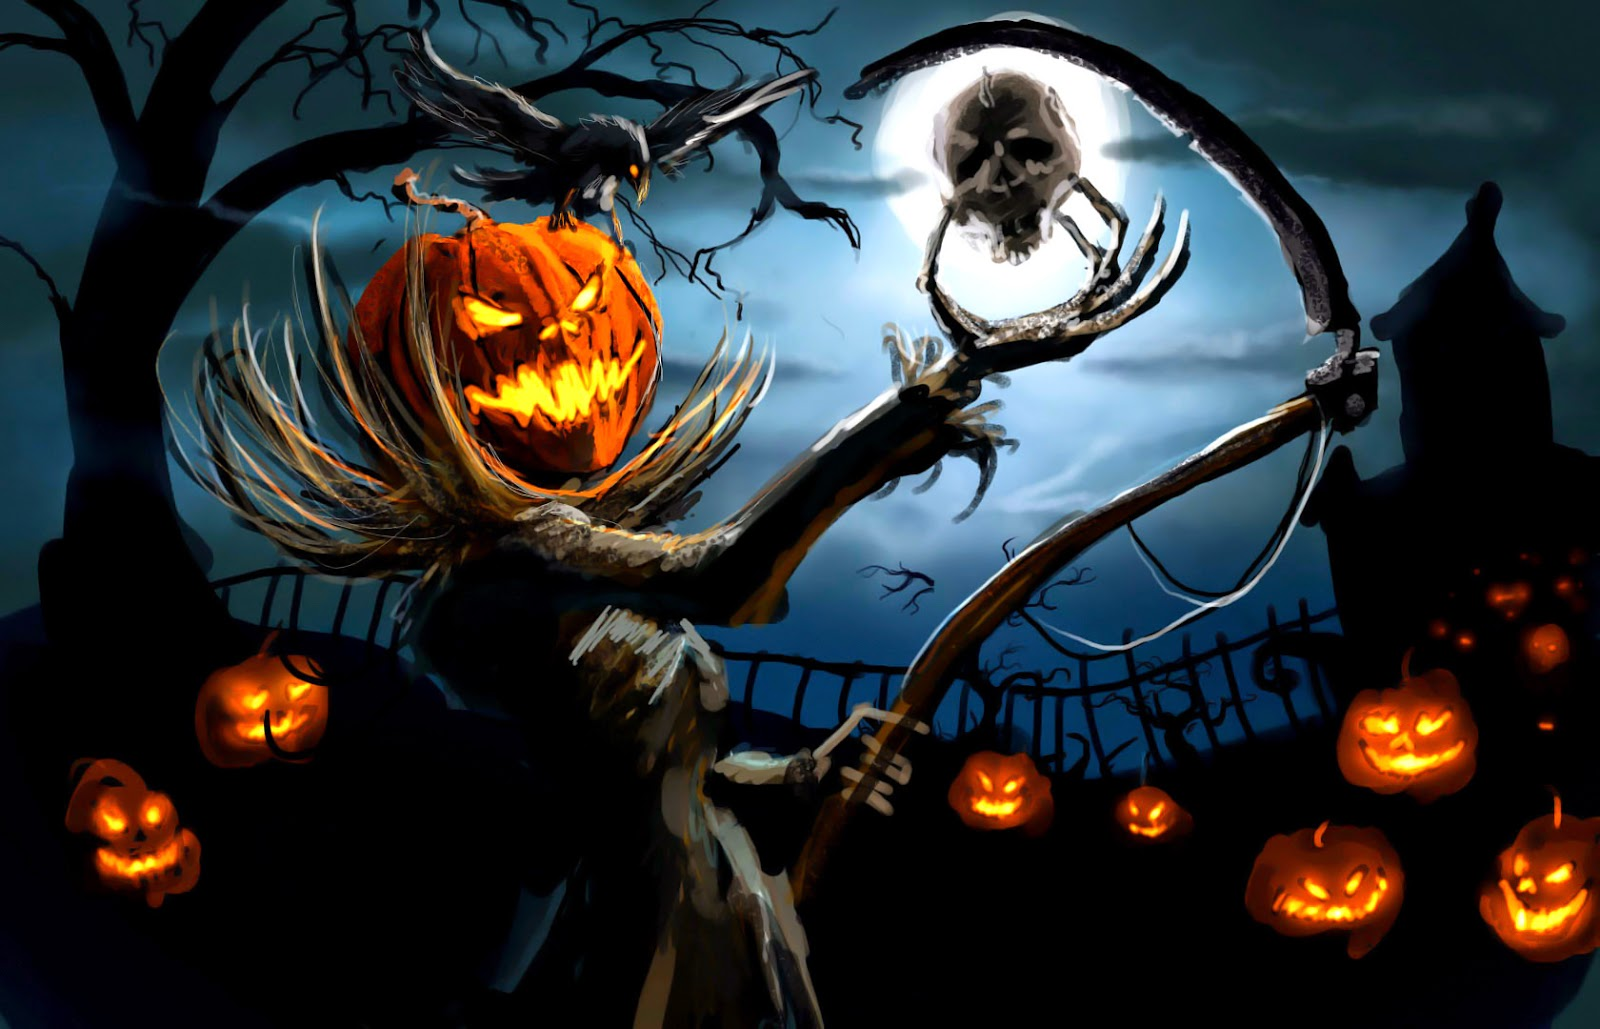 Halloween-witch-horror-skeleton-head-cartoon-image-pictures-1680x1080.jpg